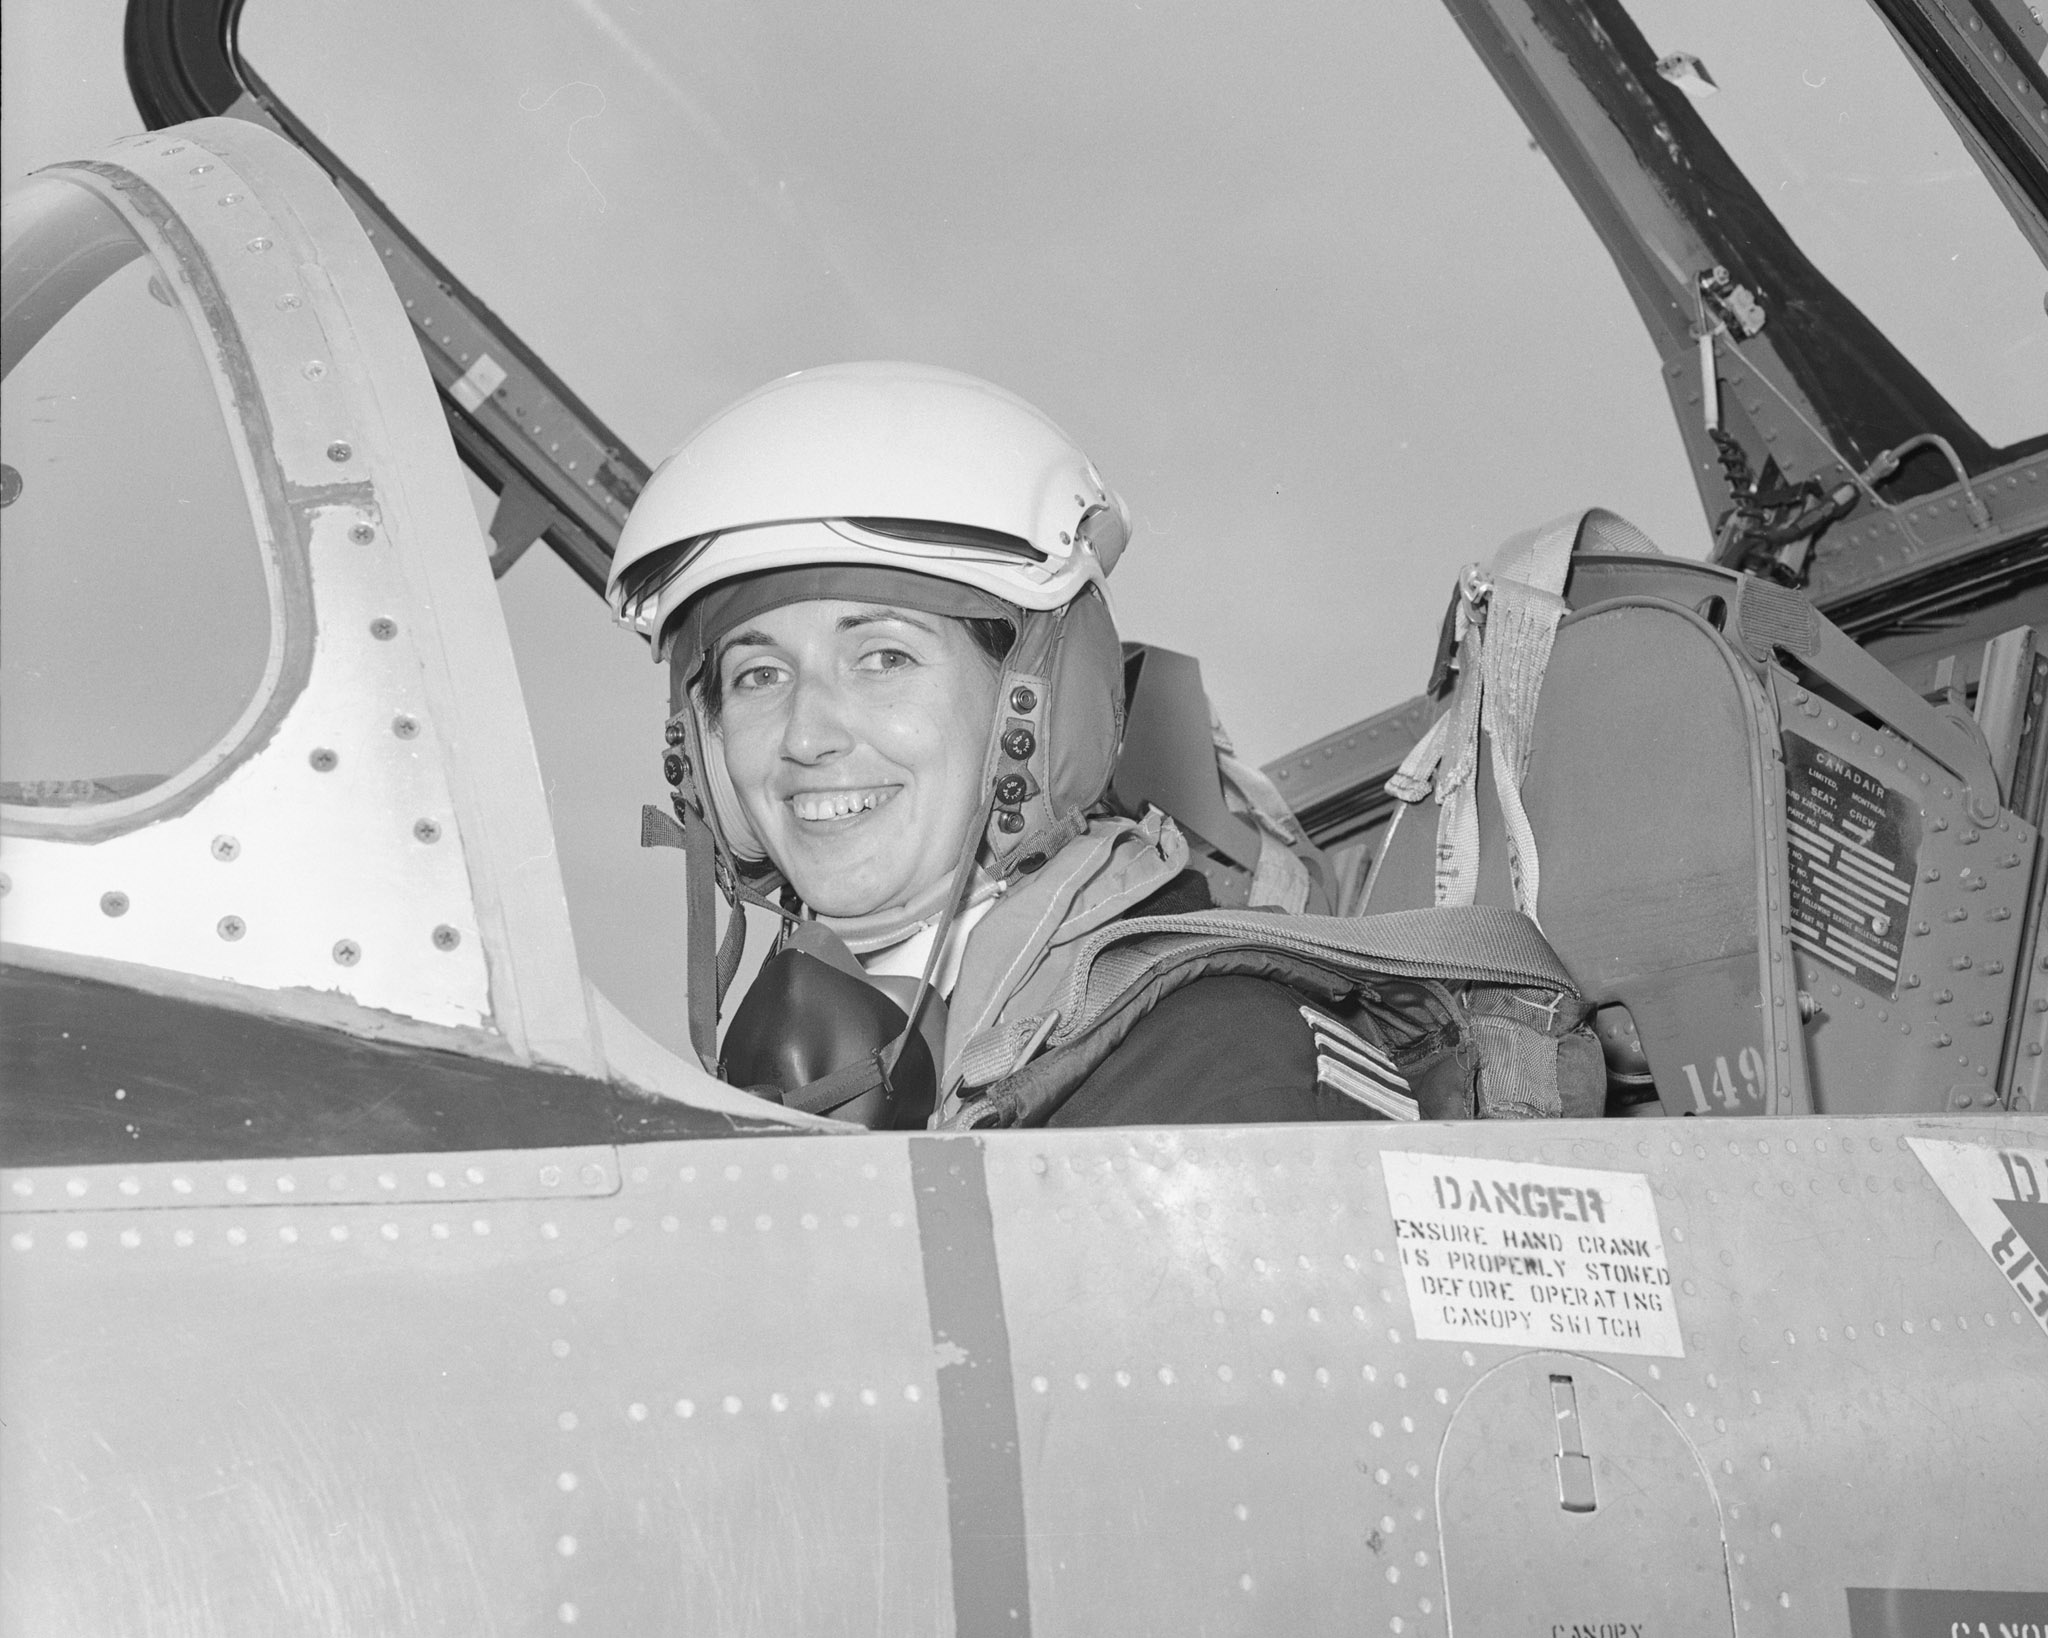 Major Wendy Clay, a flight surgeon with the Royal Canadian Air Force, earned her pilot's wings in 1974, six years before the occupation of pilot opened to women. She wanted to better understand the effects of flight on aircrew. In this photo, taken August 19, 1974, she sits in the cockpit of the CT-114 Tutor aircraft in which she took her final test to qualify for her wings at Moose Jaw, Saskatchewan. PHOTO: MJ74-1221, DND Archives